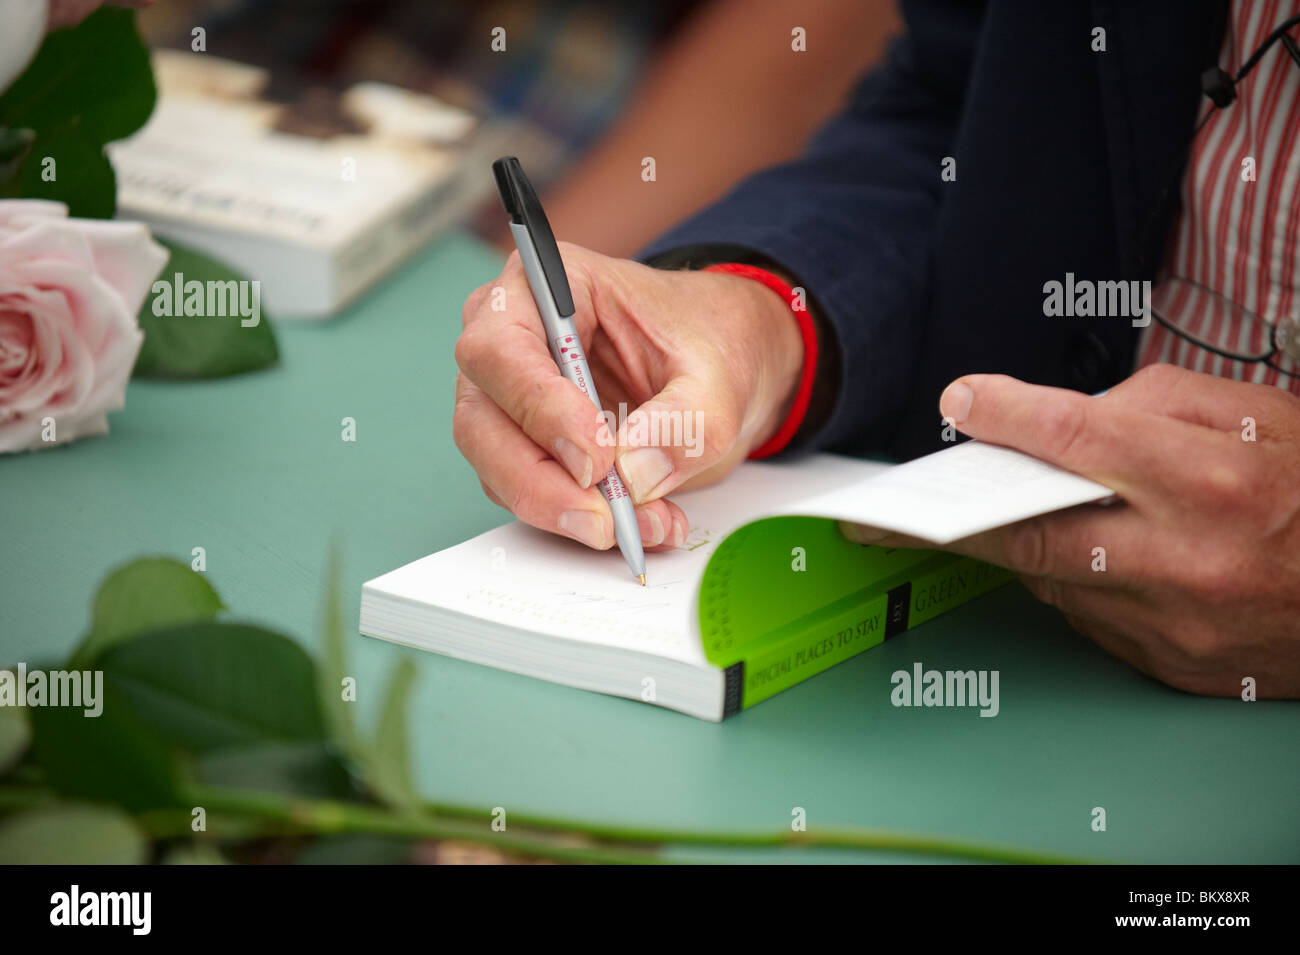 Book Signing - Stock Image